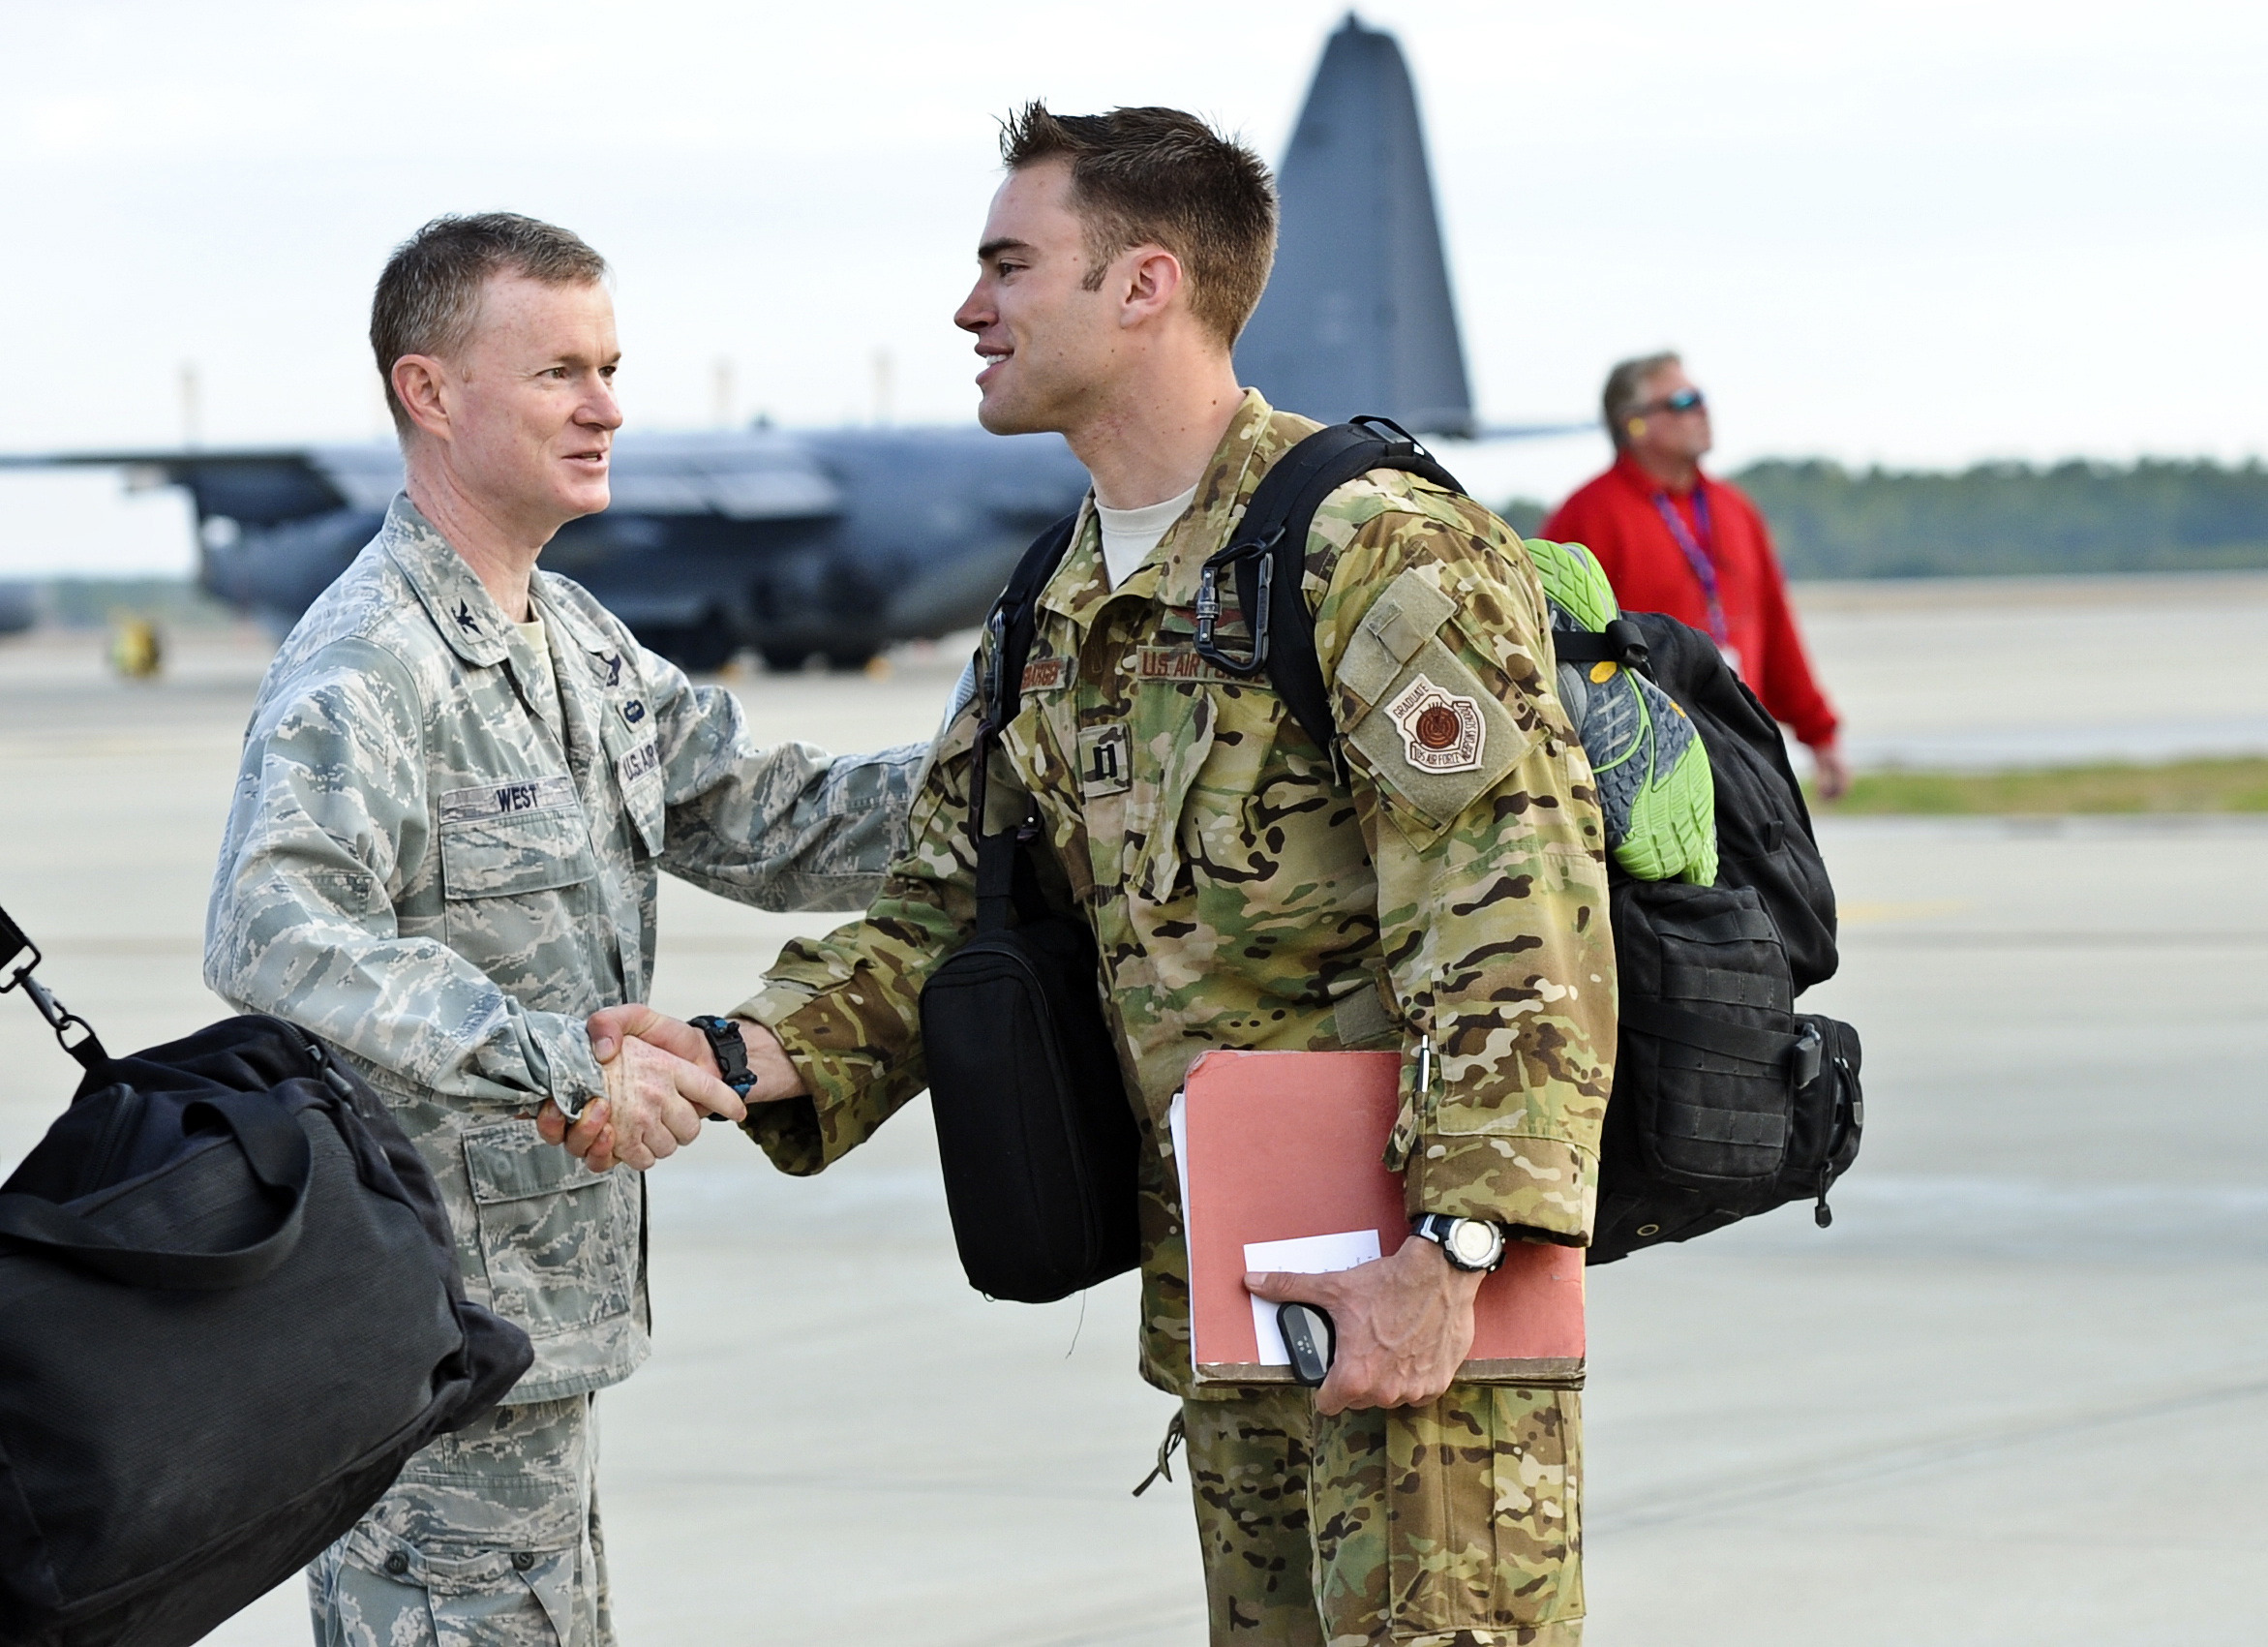 A U.S. Airman welcomes home one of more than 100 Airmen with the 9th Aircraft Maintenance Unit at Hurlburt Field, Fla., March 9, 2014 140309-F-NT442-097